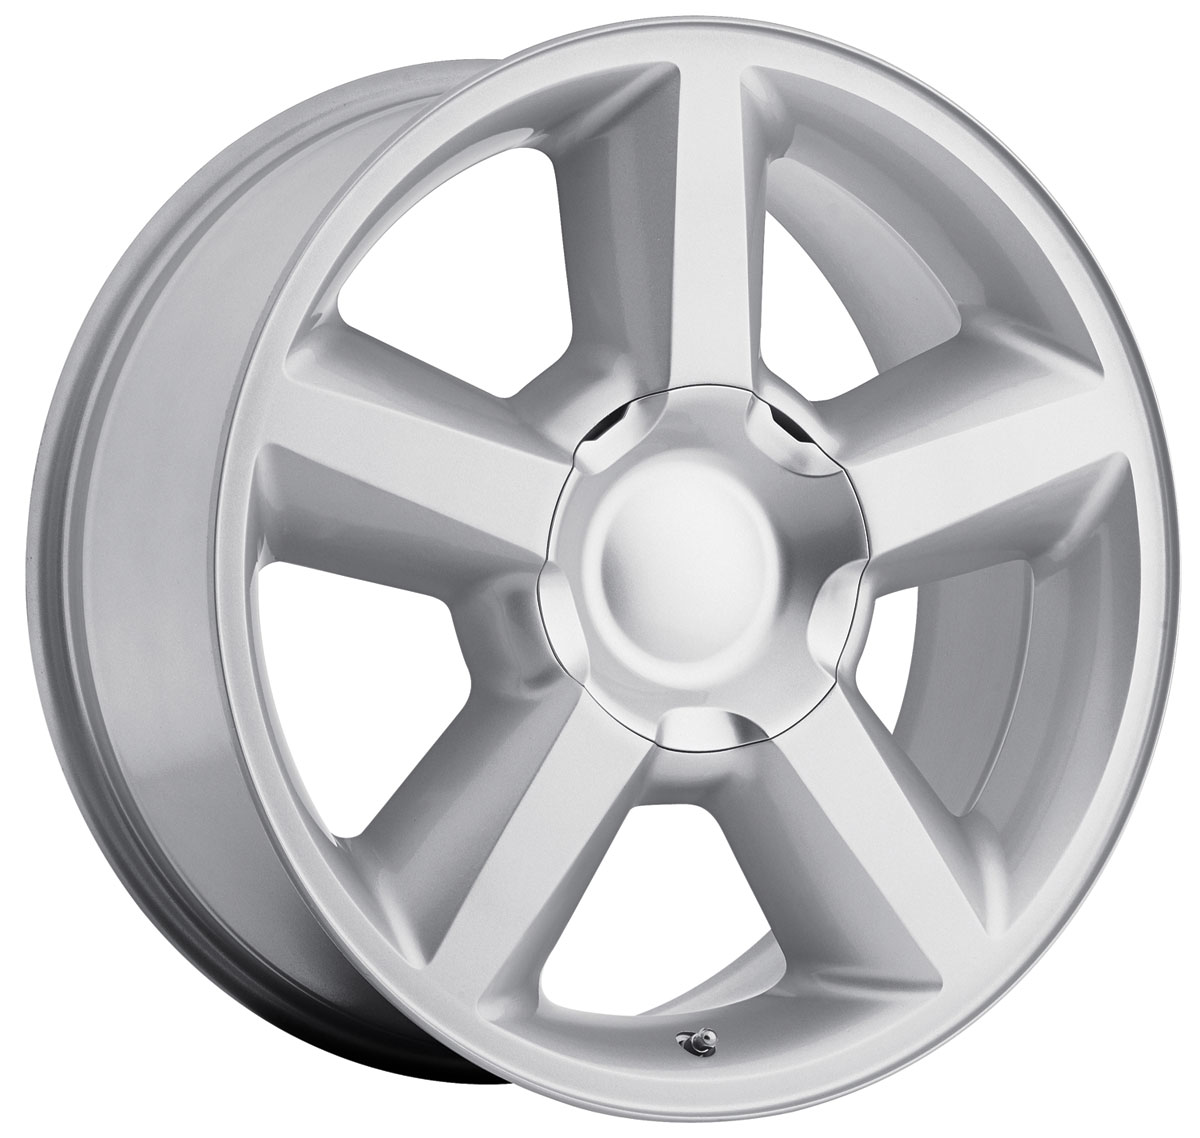 Wheel, Factory Reproduction, Escalade, SRS 31, 20X8.5 6X5.5 +30 HB 78.1